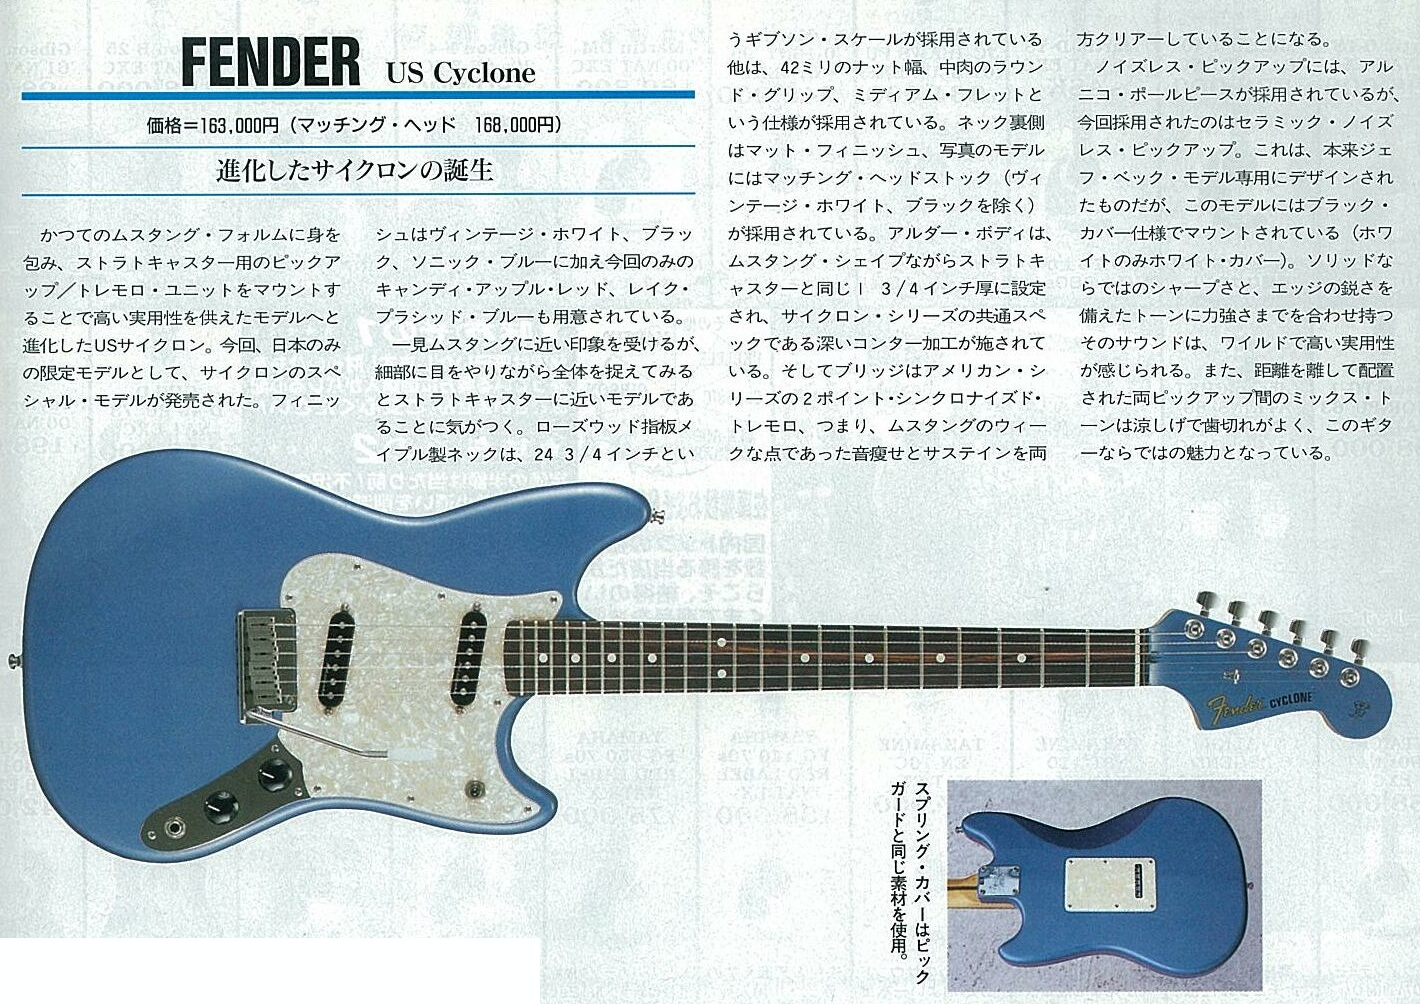 Vintage House Of Guitars FENDER